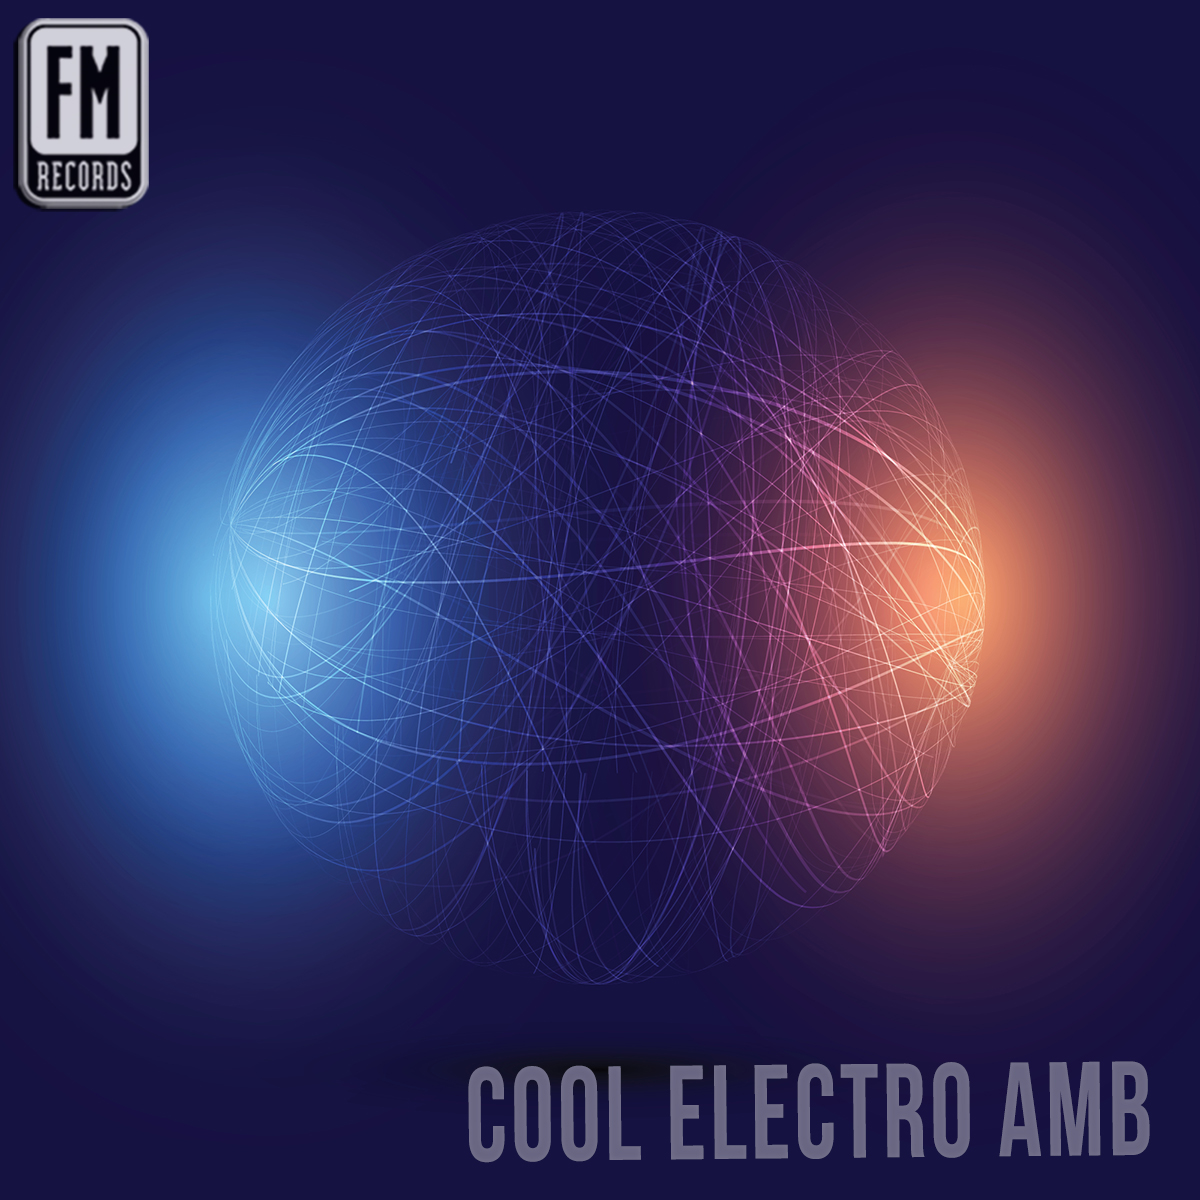 Cool Electro Amb